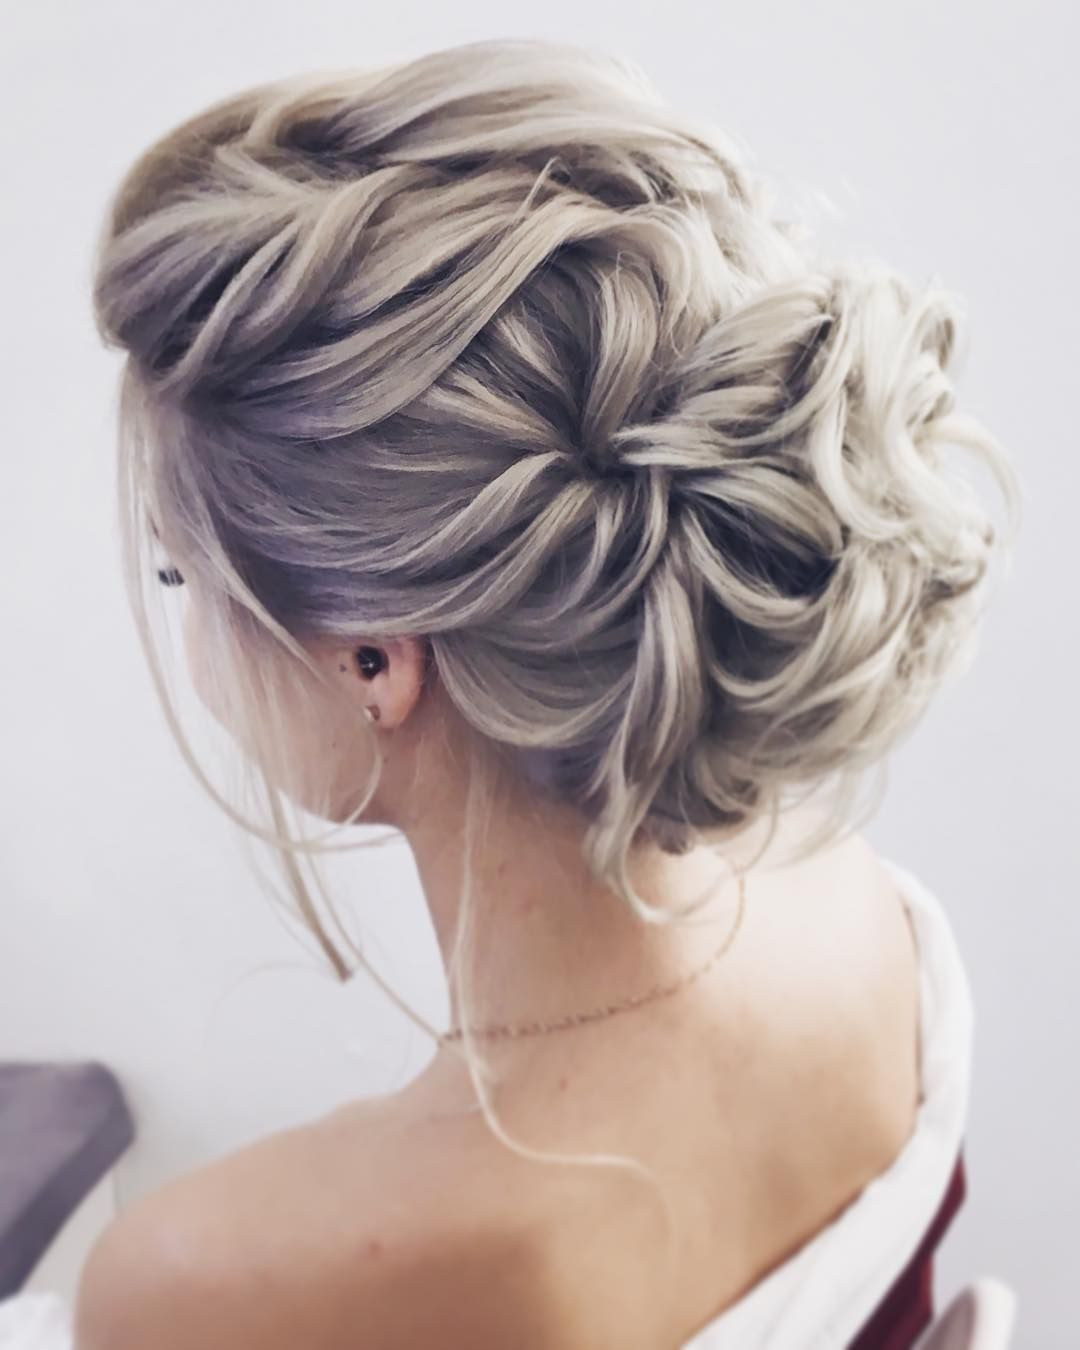 17+ Dazzling Hairstyles 2019 Ideas In 2019